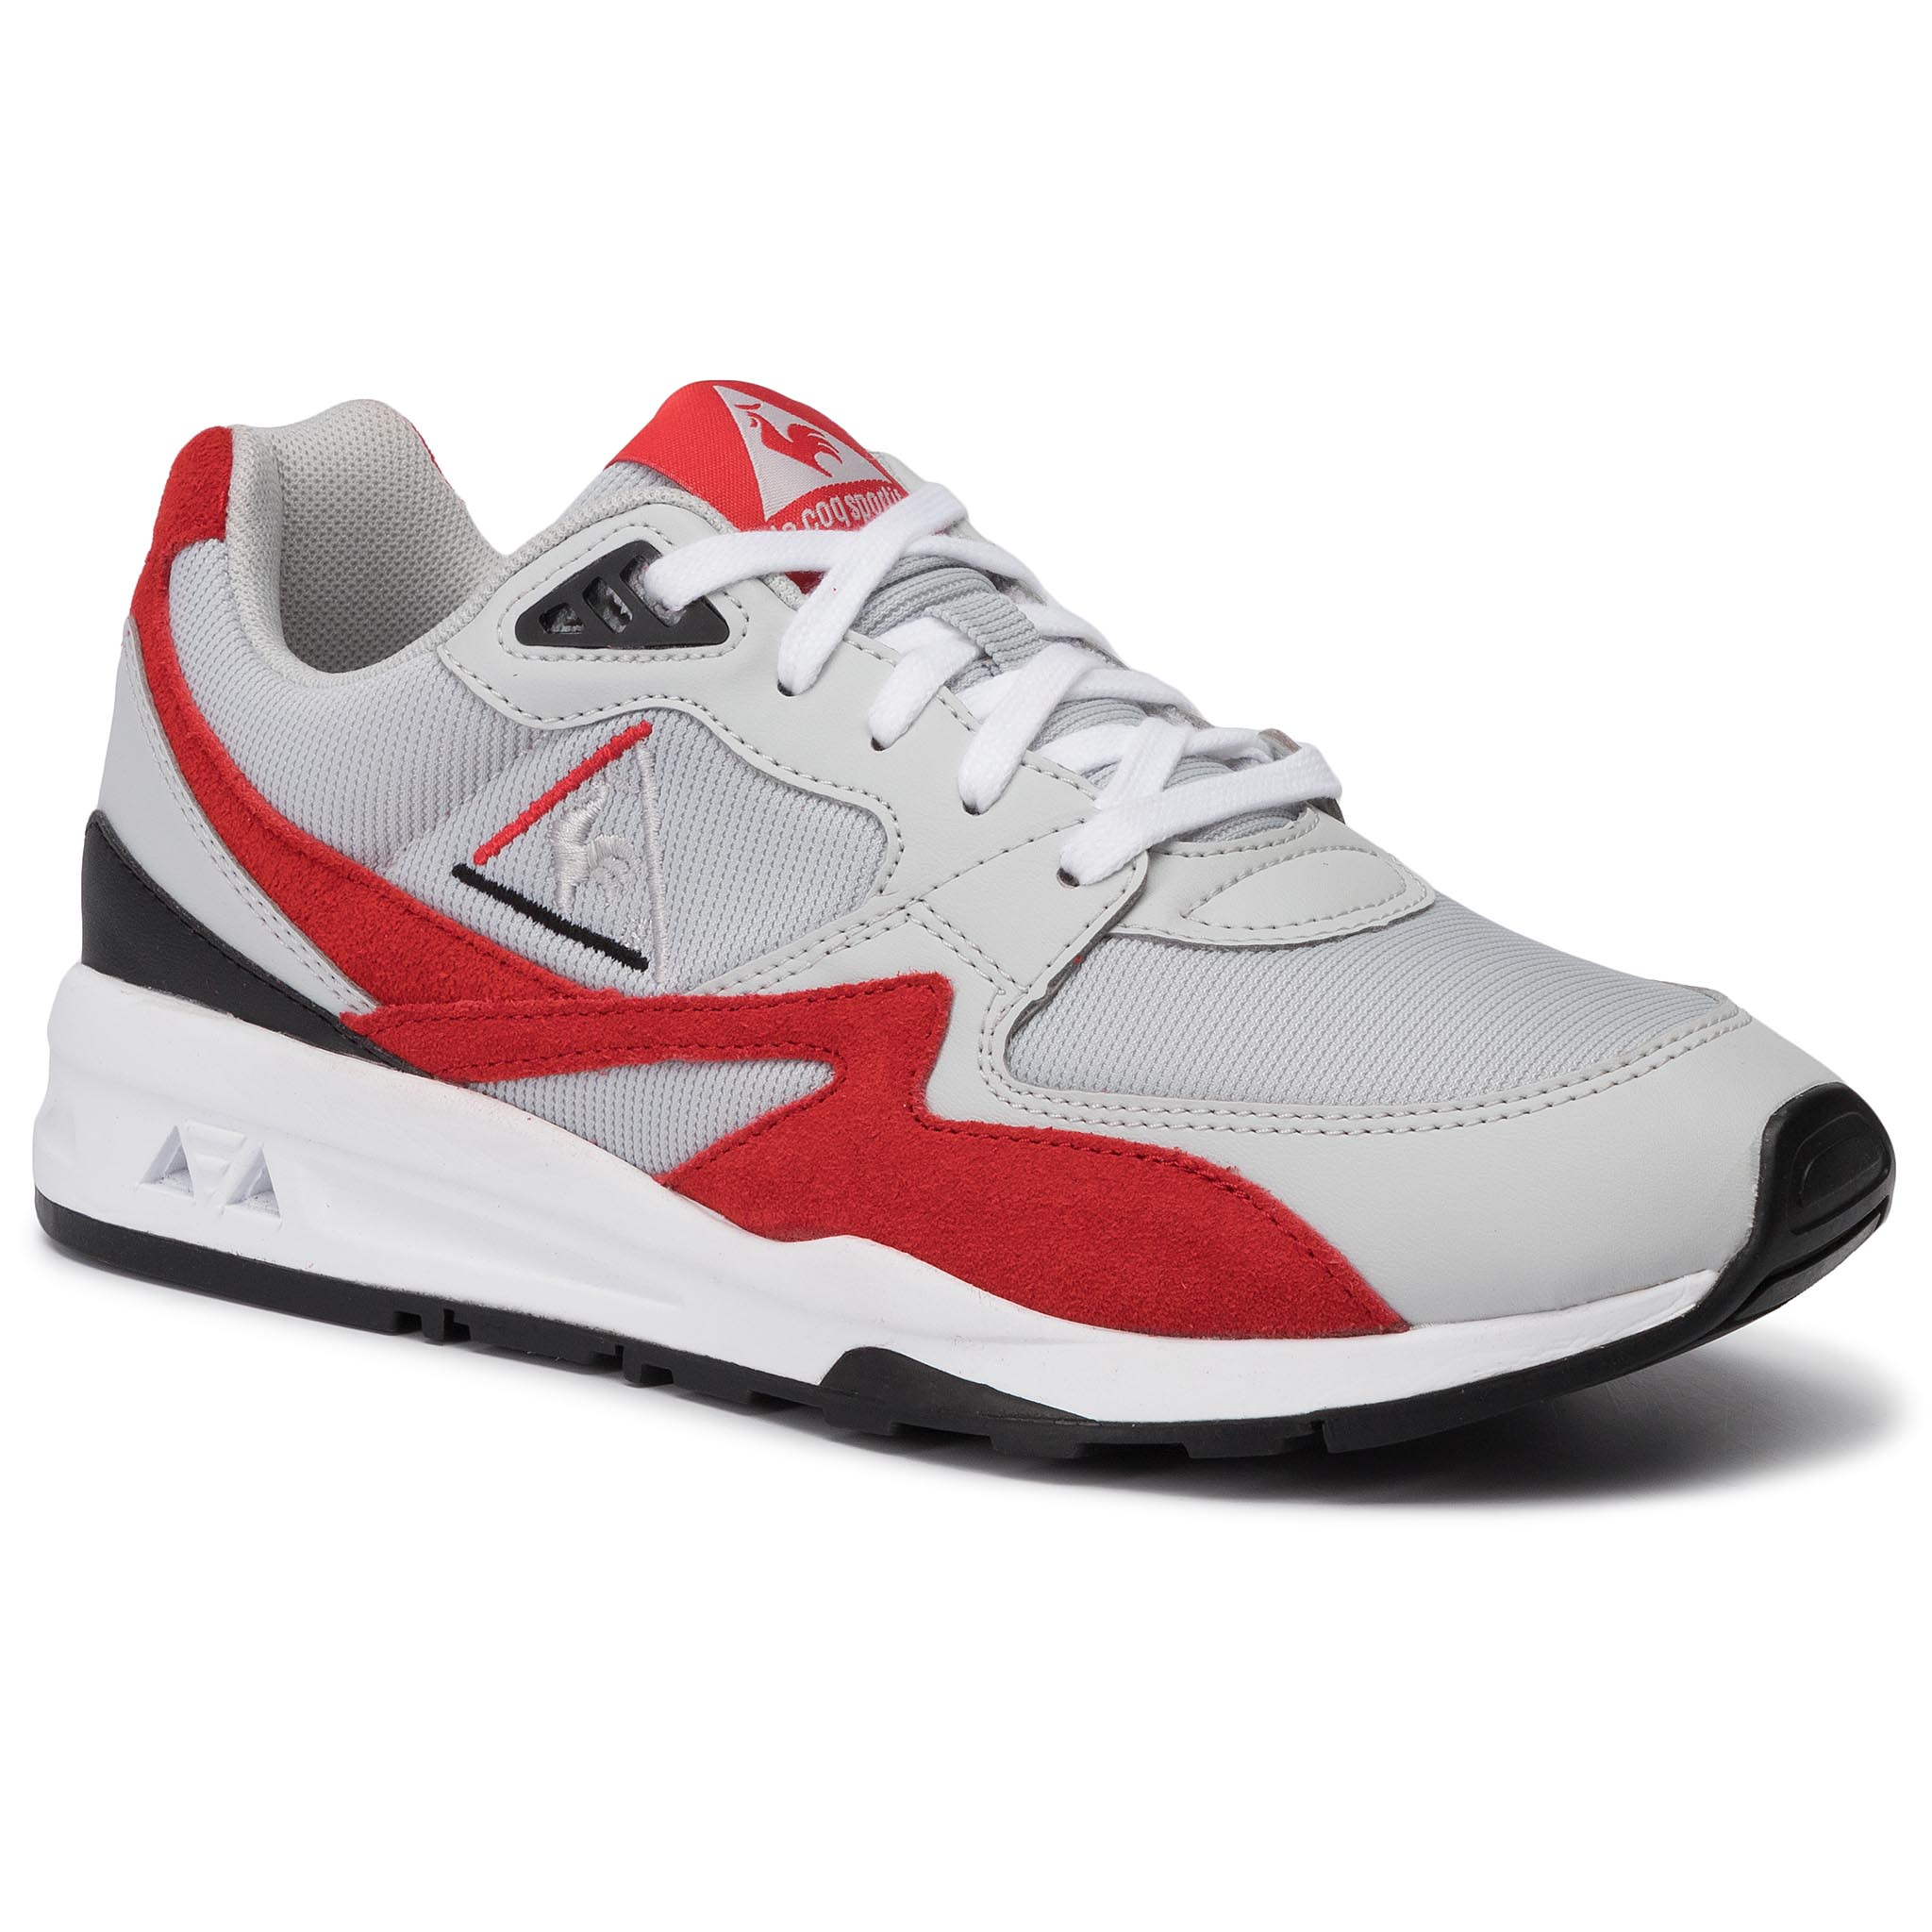 Sneaker Le Coq Sportif Sneakers LE COQ SPORTIF - Lcs R800 Sport 1910598  Galet/Pure Red